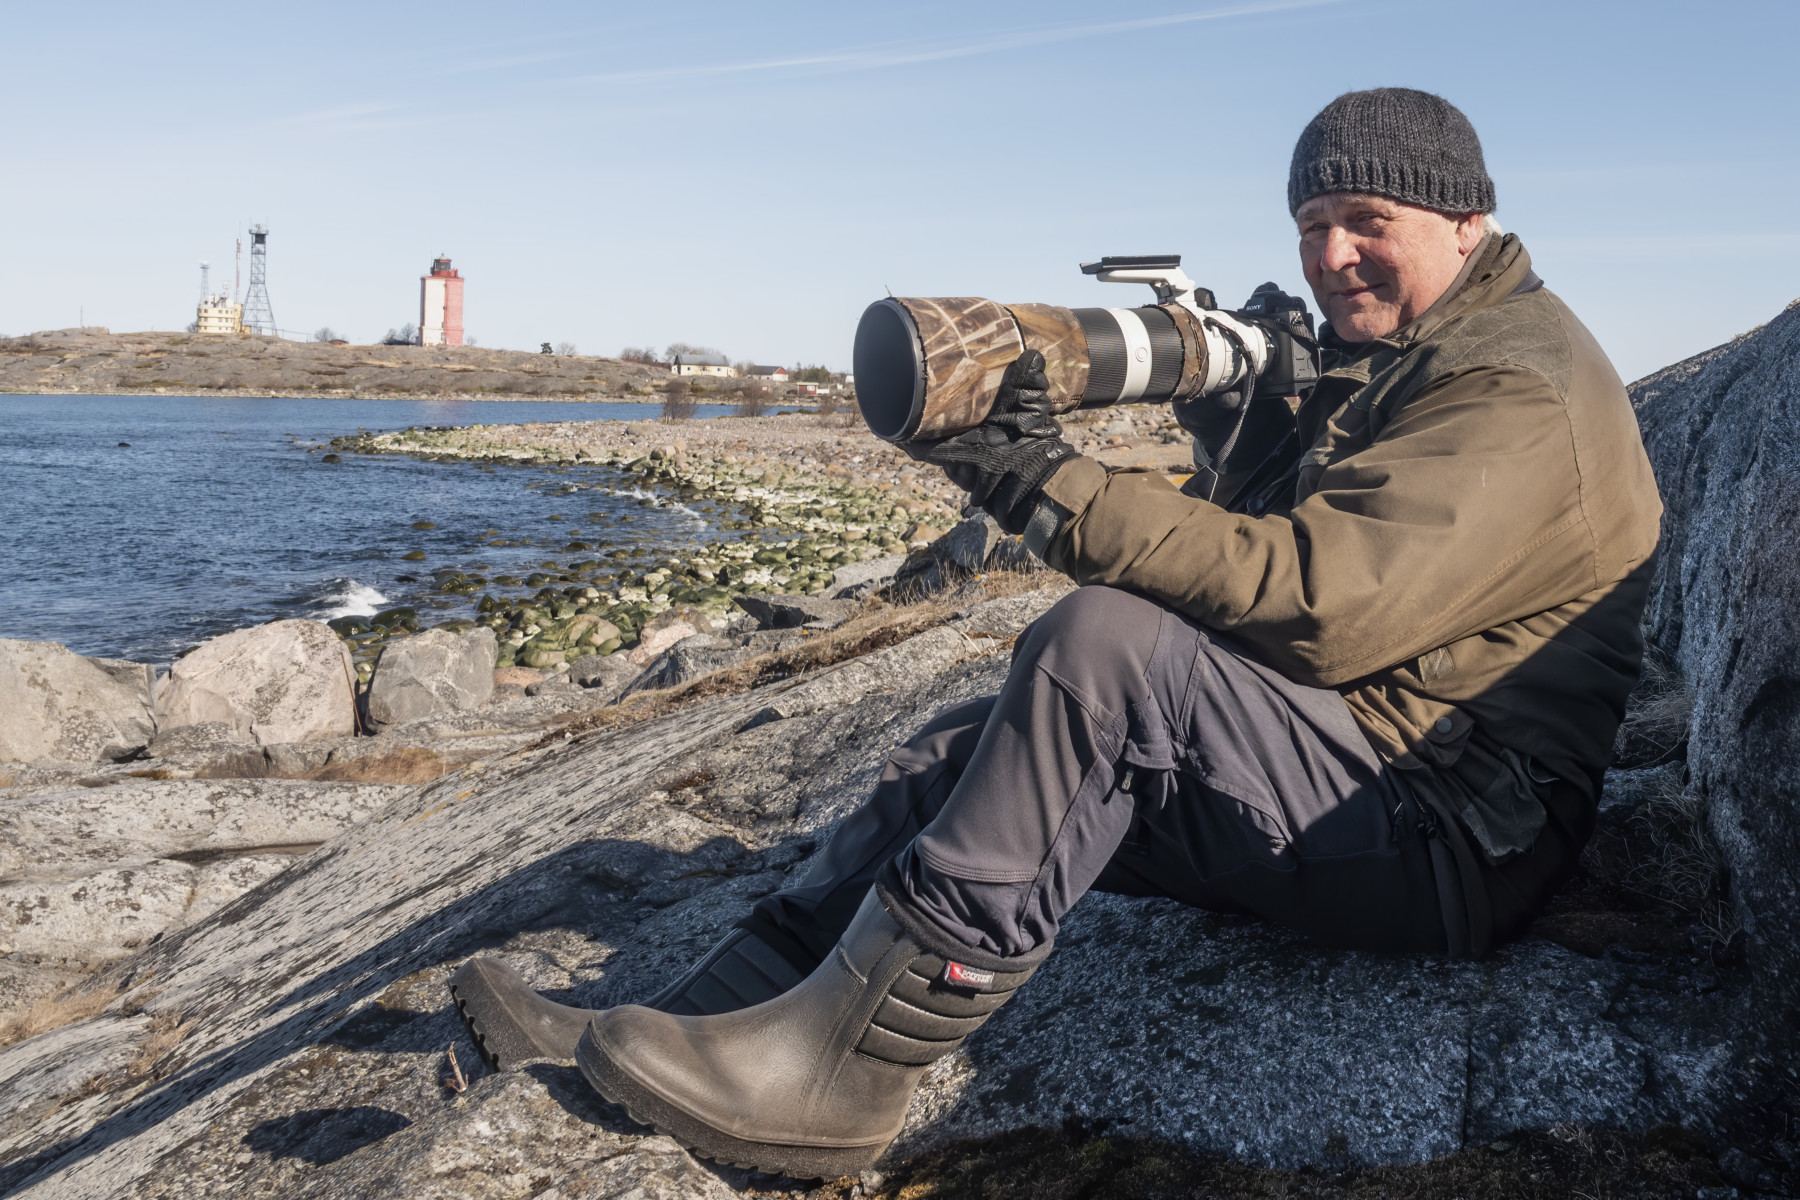 A man sits on a rocky ocean shoreline and adjusts a camera with a long lens.